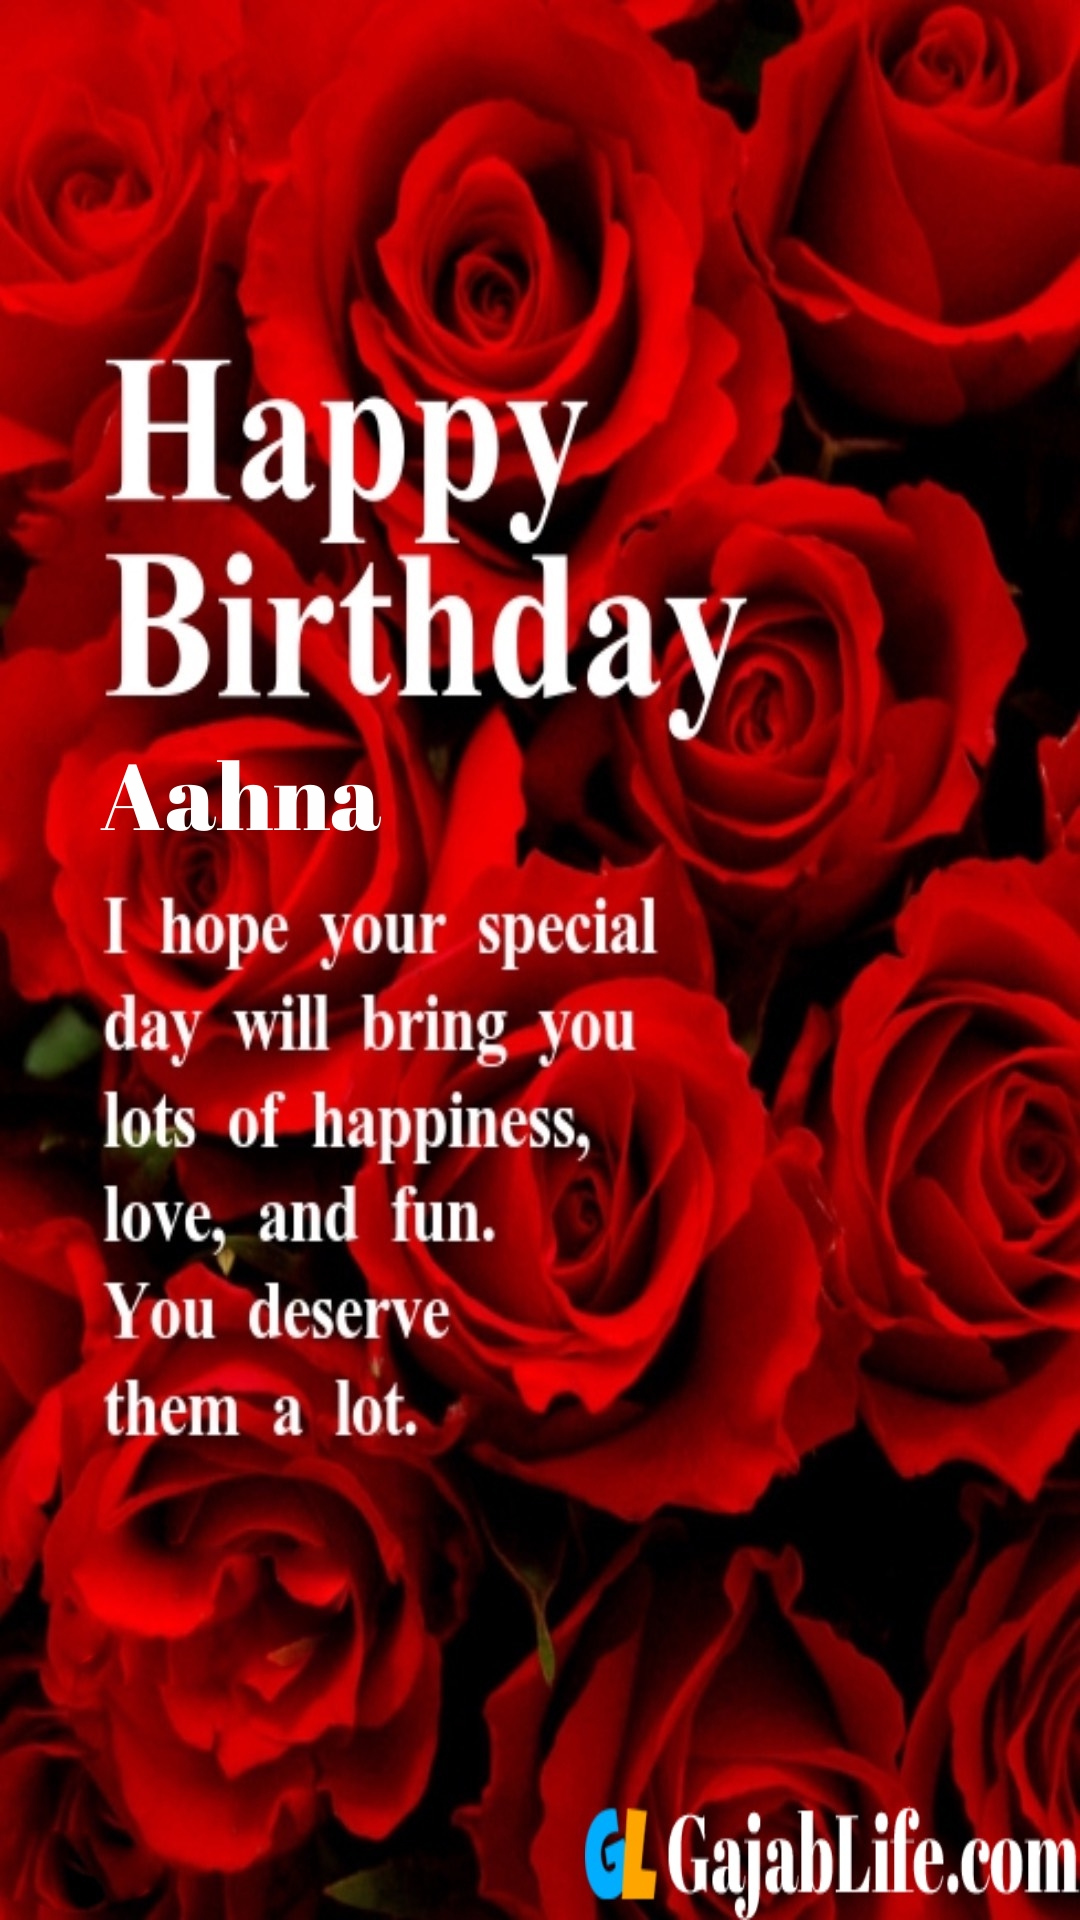 Aahna birthday greeting card with rose & love